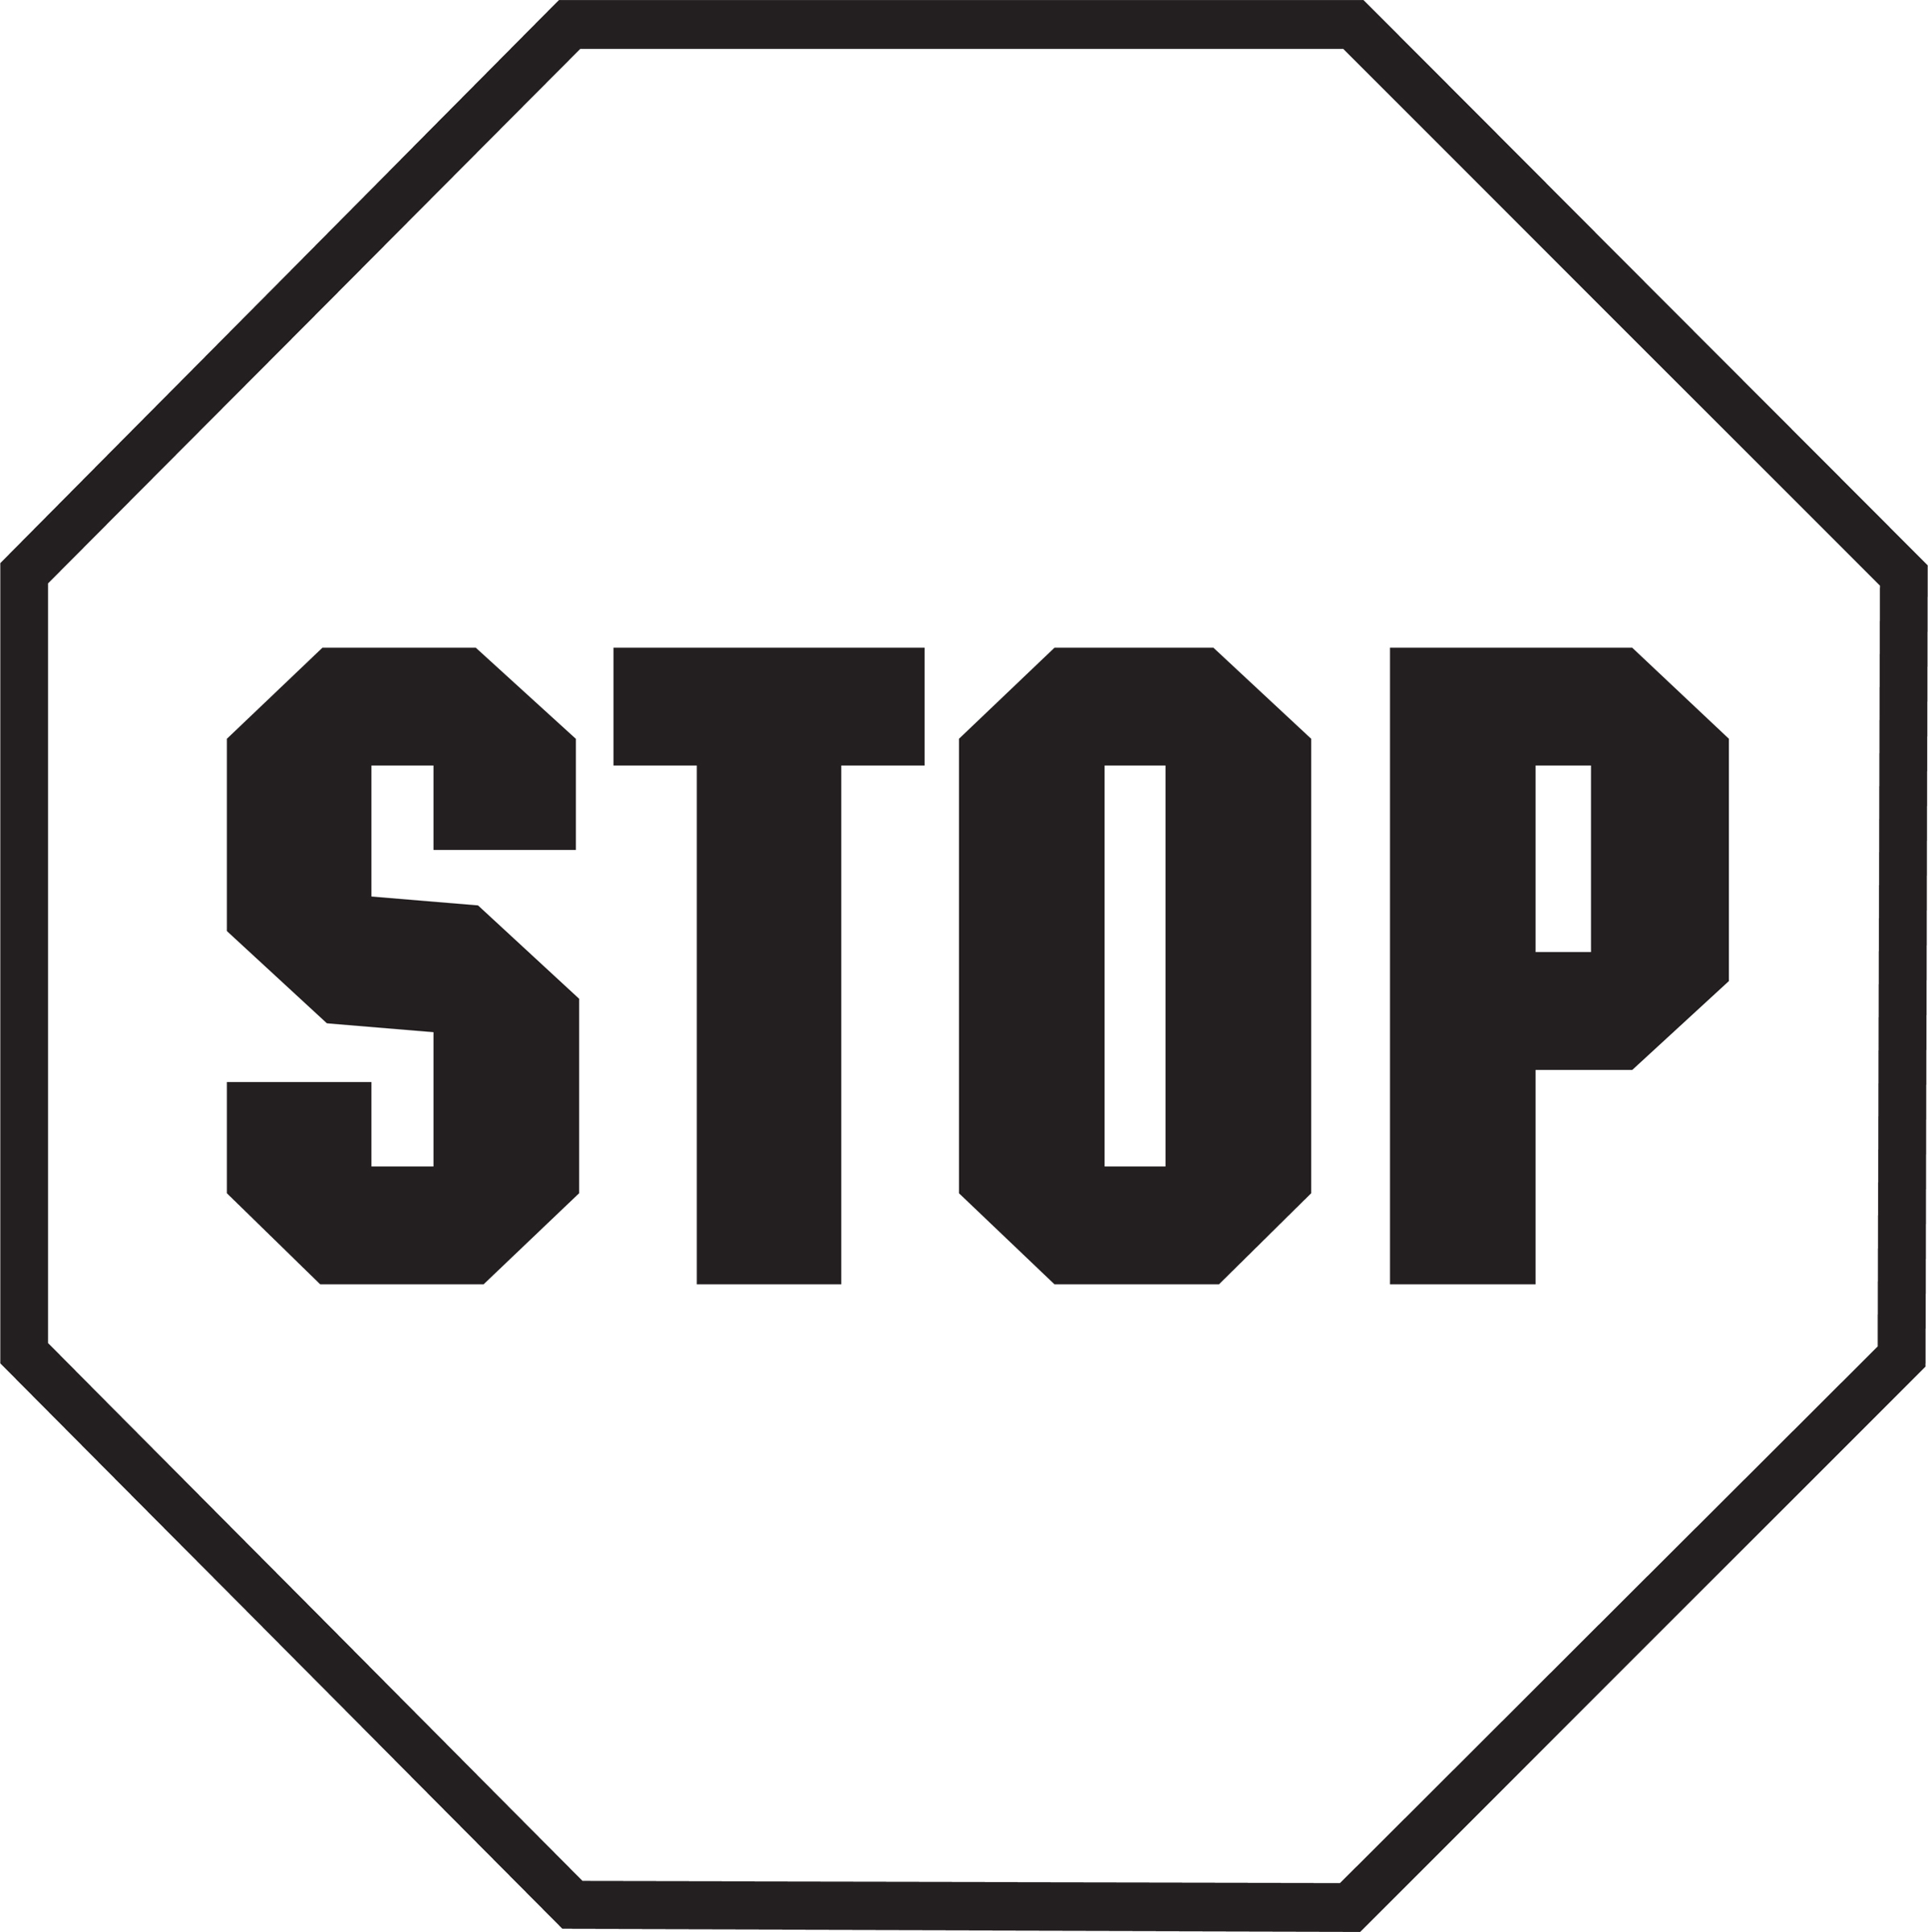 best stop sign black and white 13919 clipartion com free clip art stop sign eat sign free clip art stop sign black and white